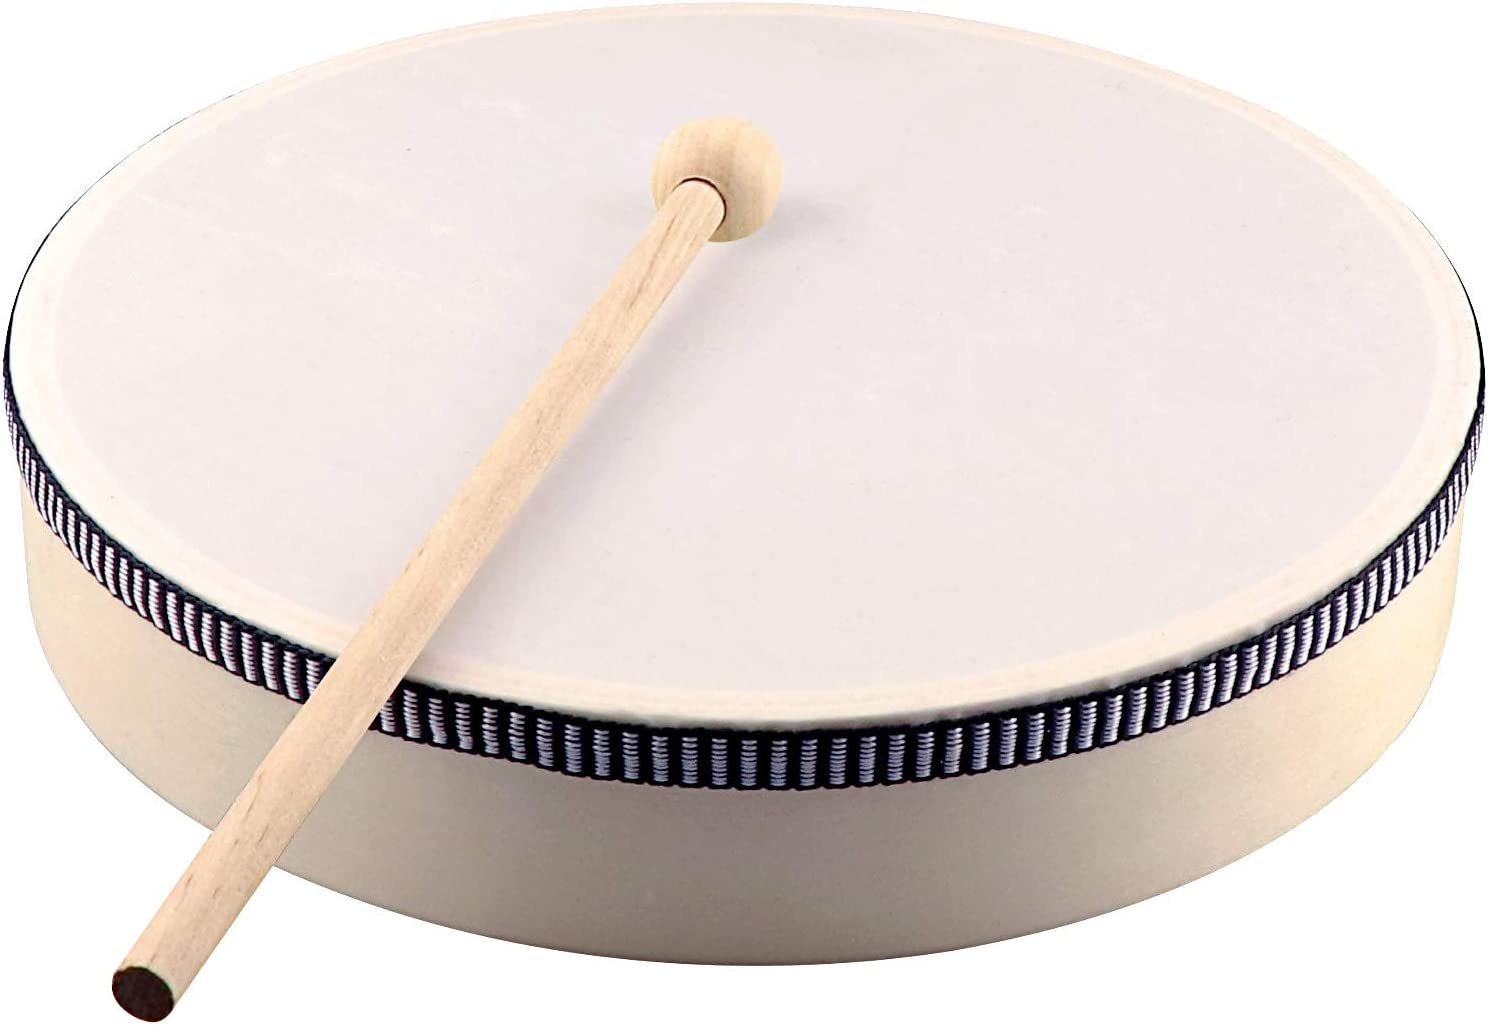 4inches Lanbowo Wooden Hand Drum Kids Percussion Toy Wood Frame Drum for Children Music Game